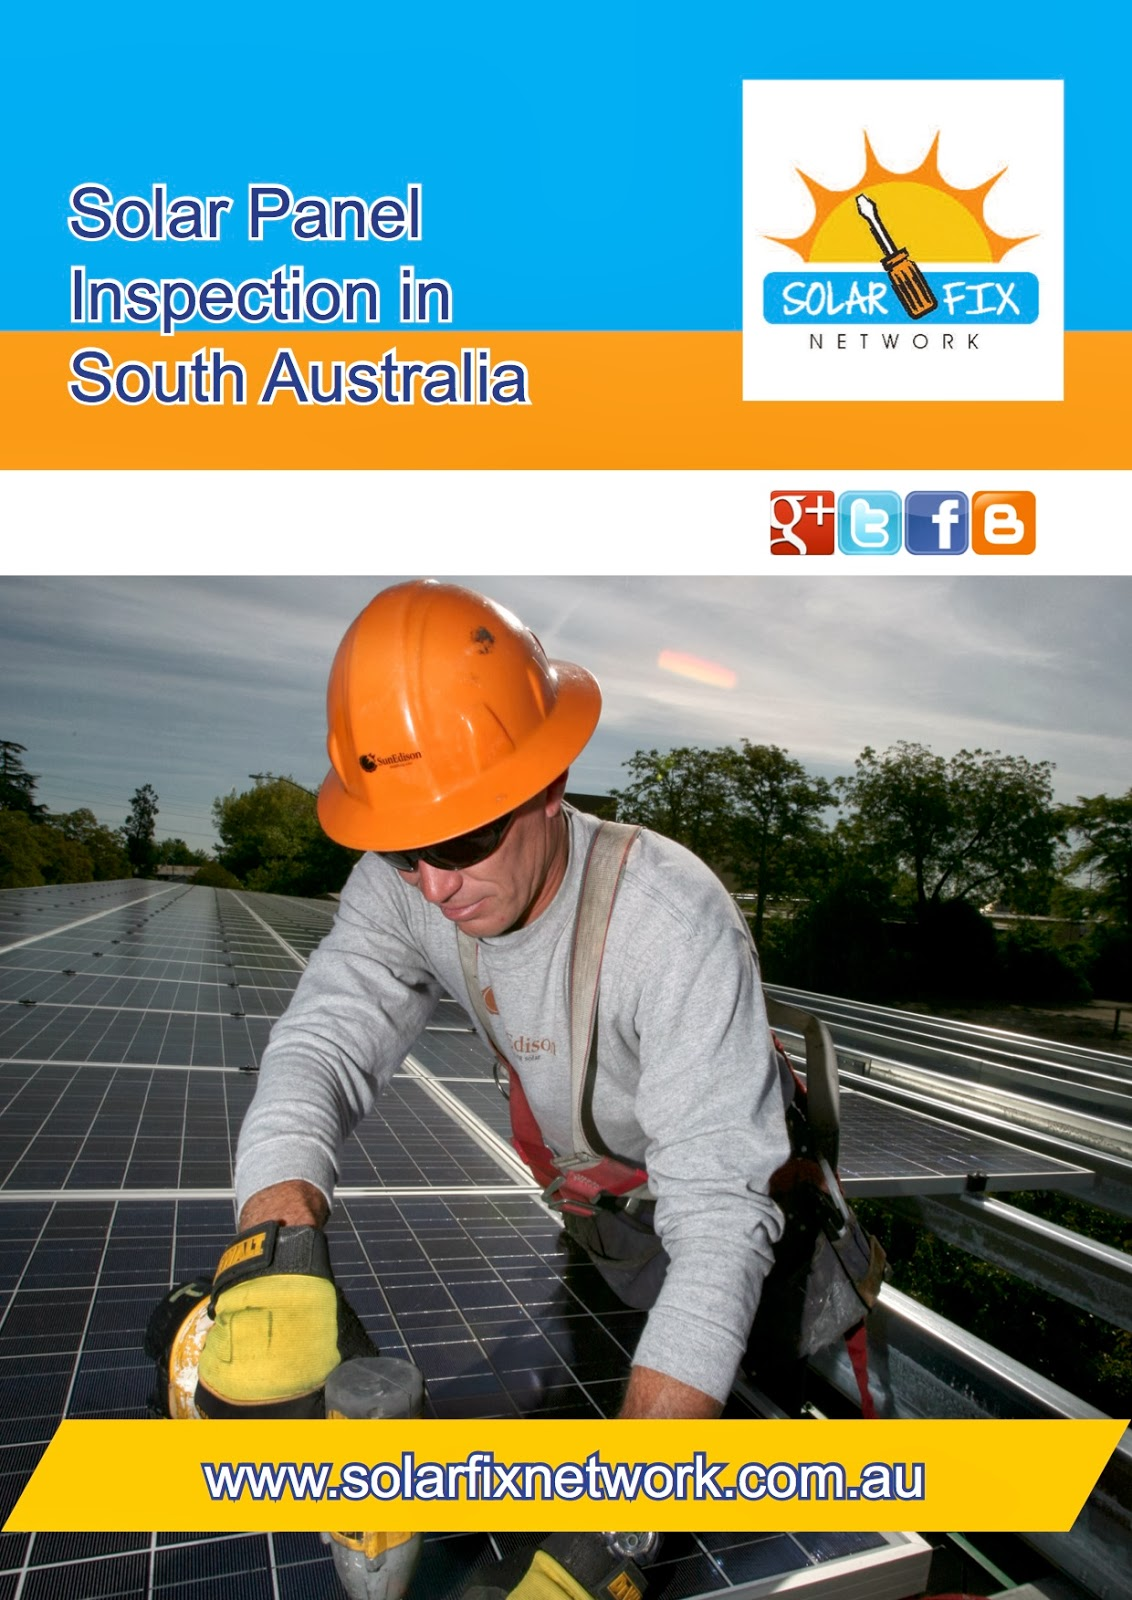 Solar Fix Network offer a full range of solar panel inspection and maintenance services